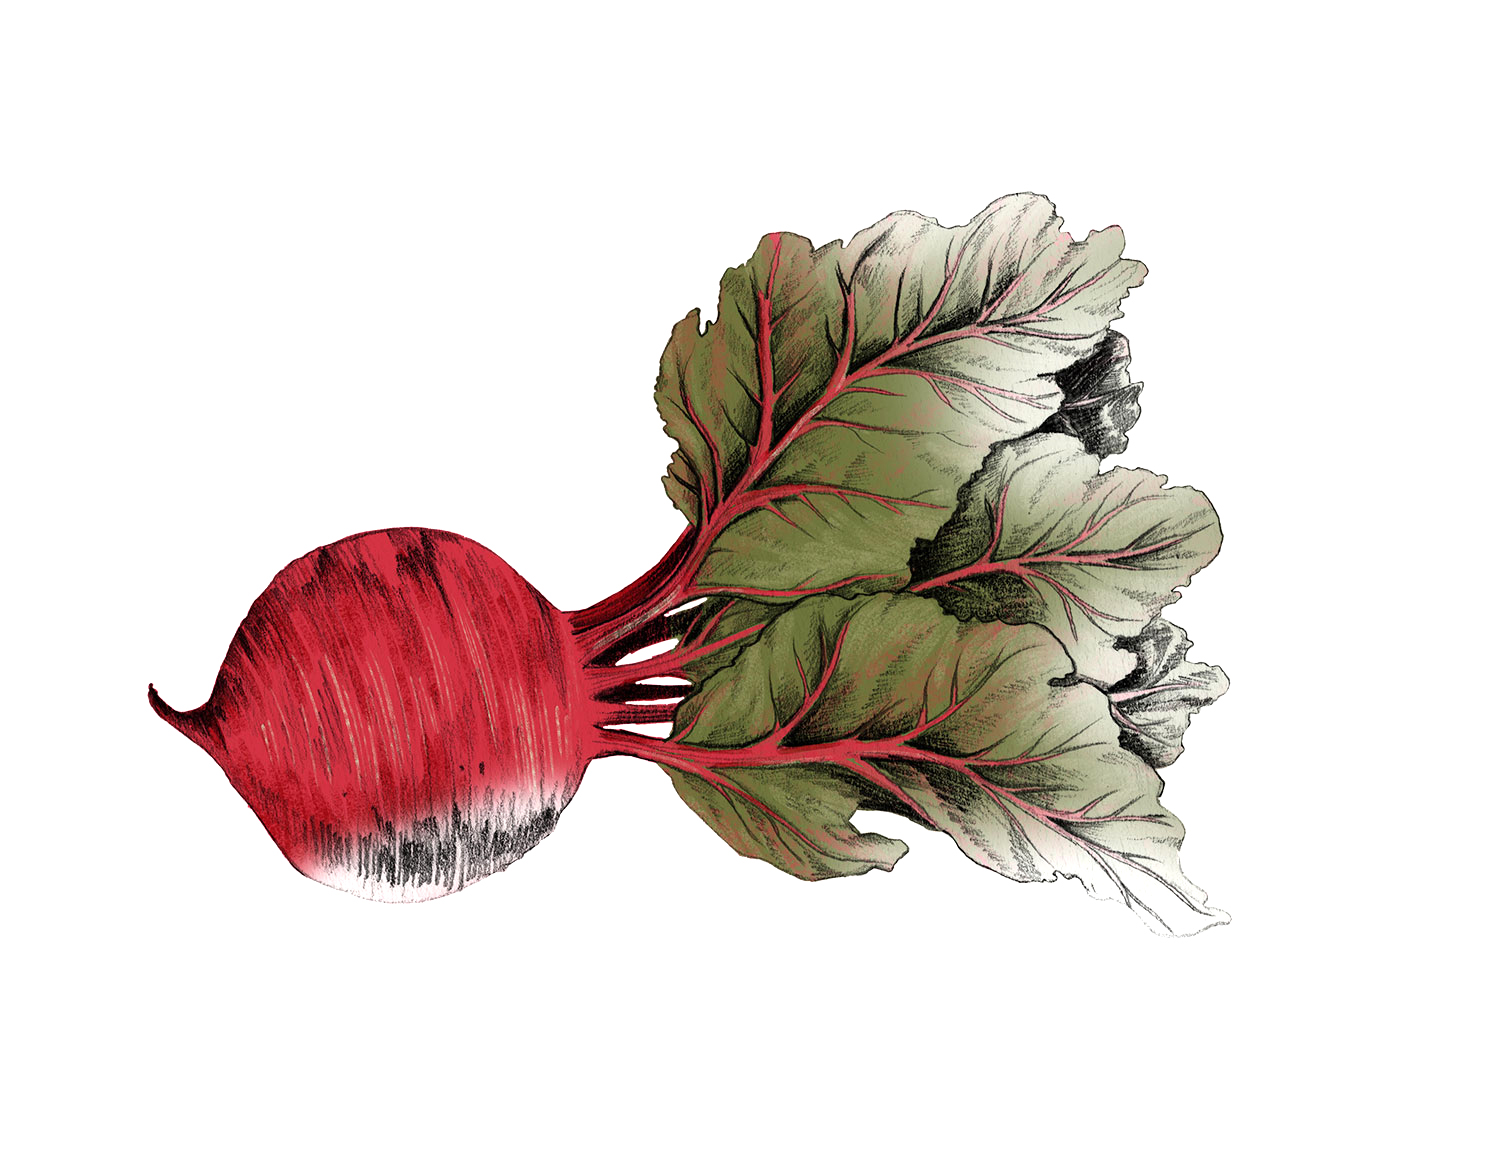 fig. 2. Beet drawing